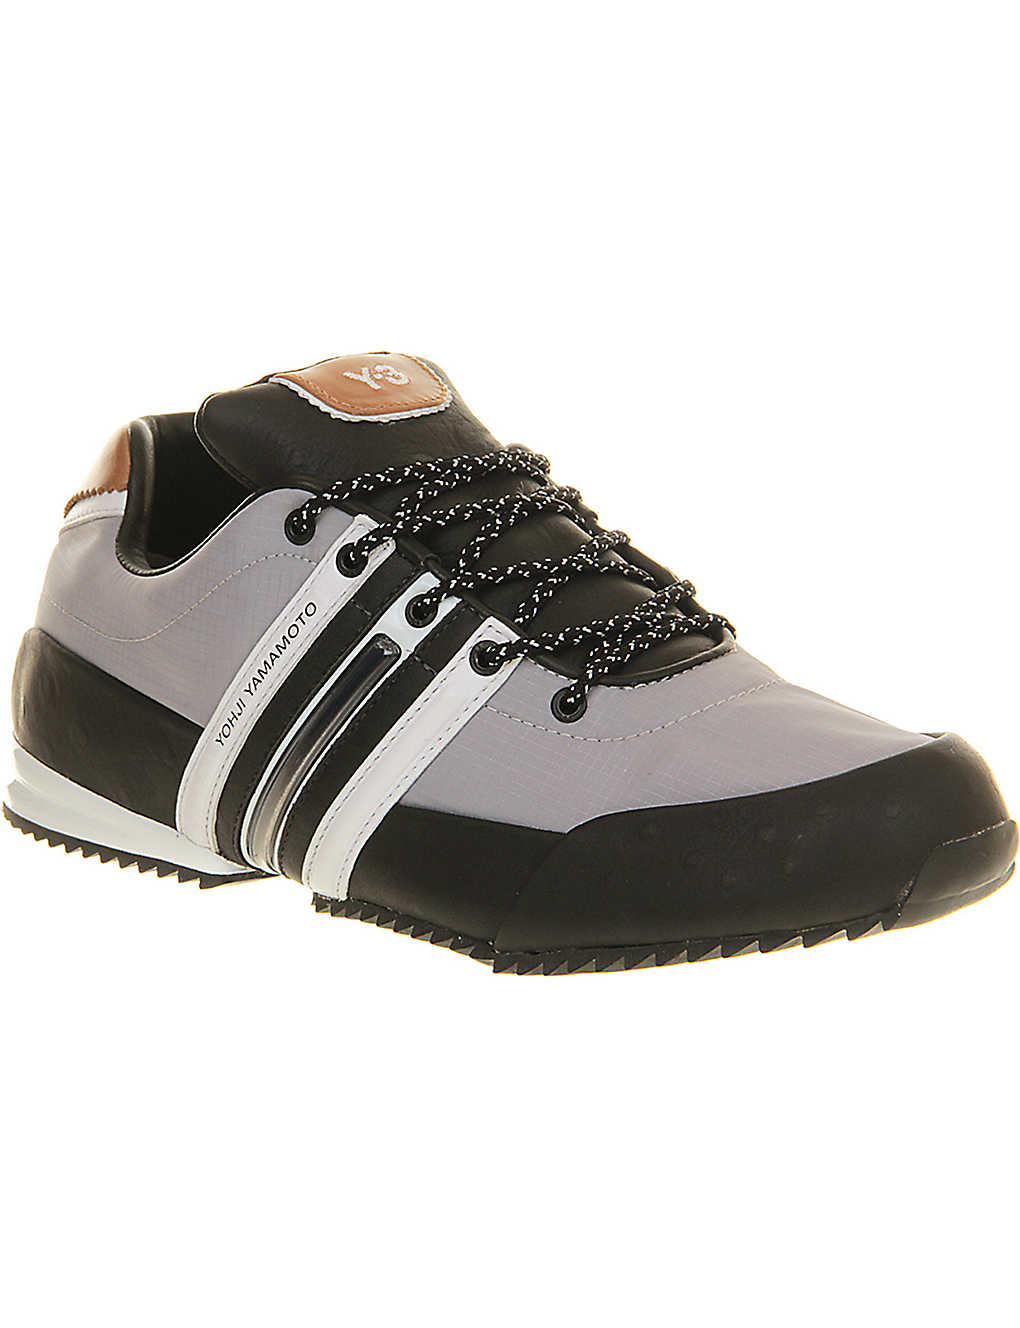 71908c2d1e5d4c ADIDAS Y3 - Y3 Sprint leather trainers